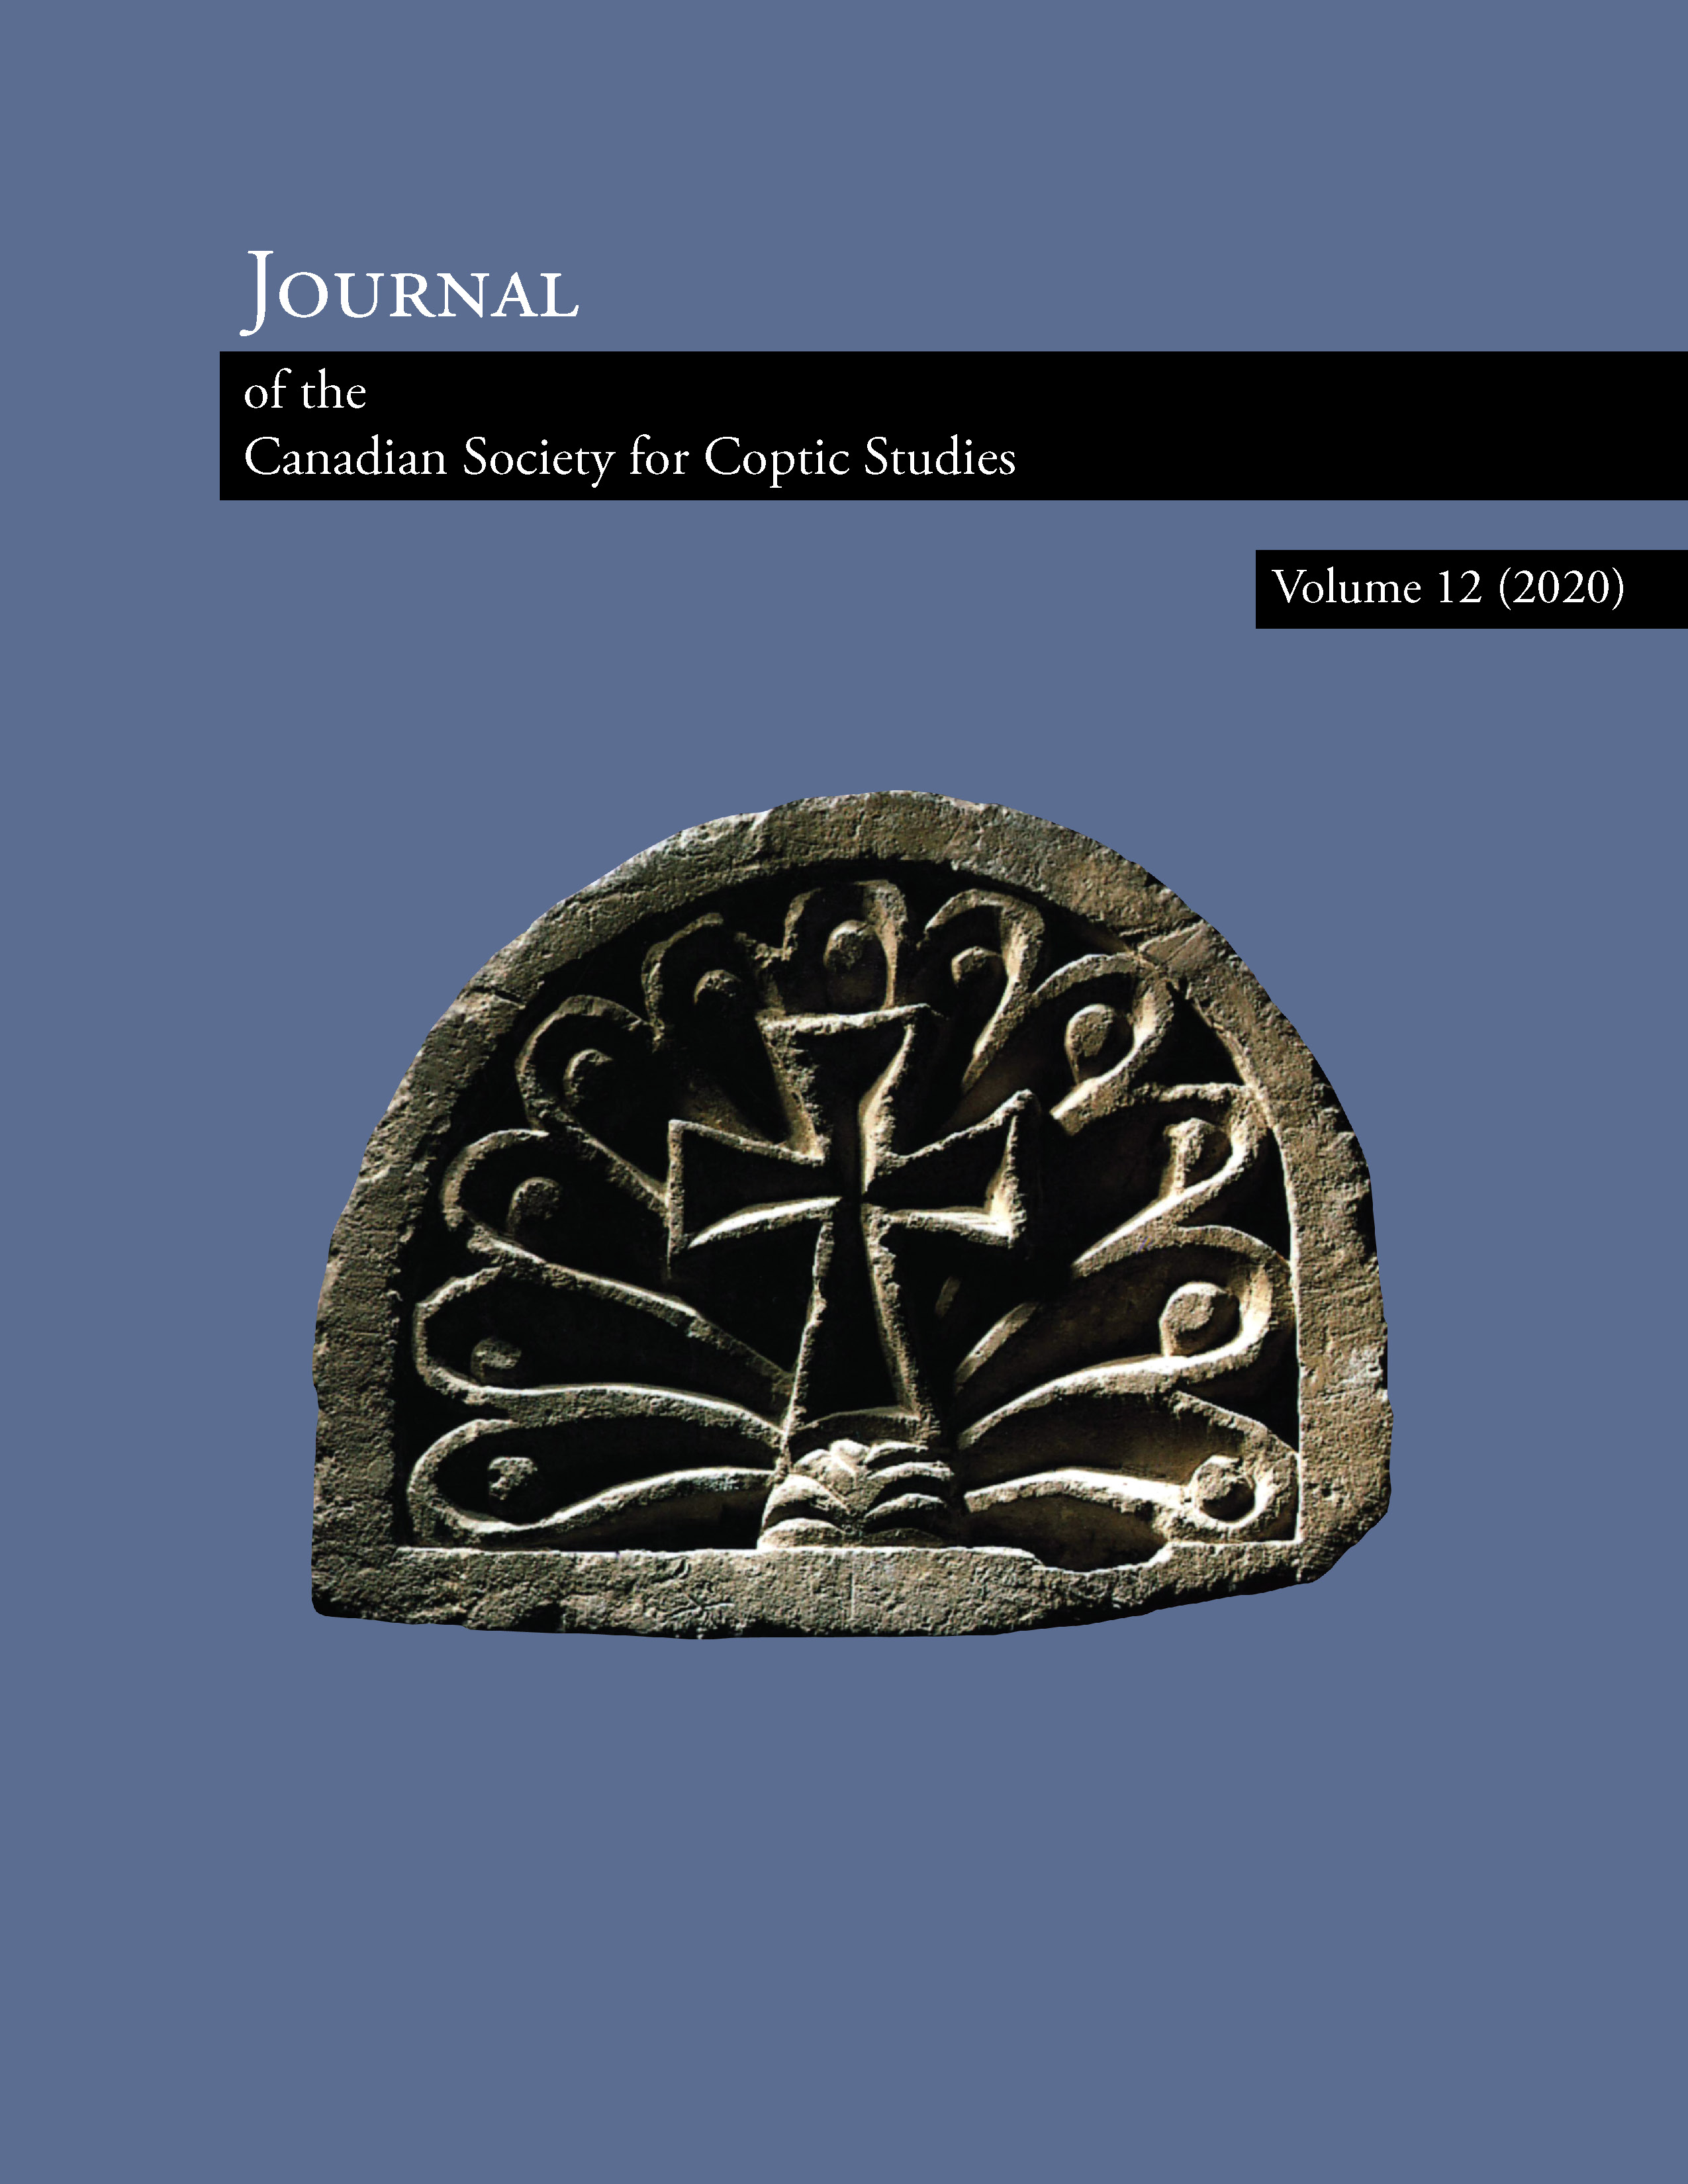 Journal of the Canadian Society for Coptic Studies vol. 12 (2020)